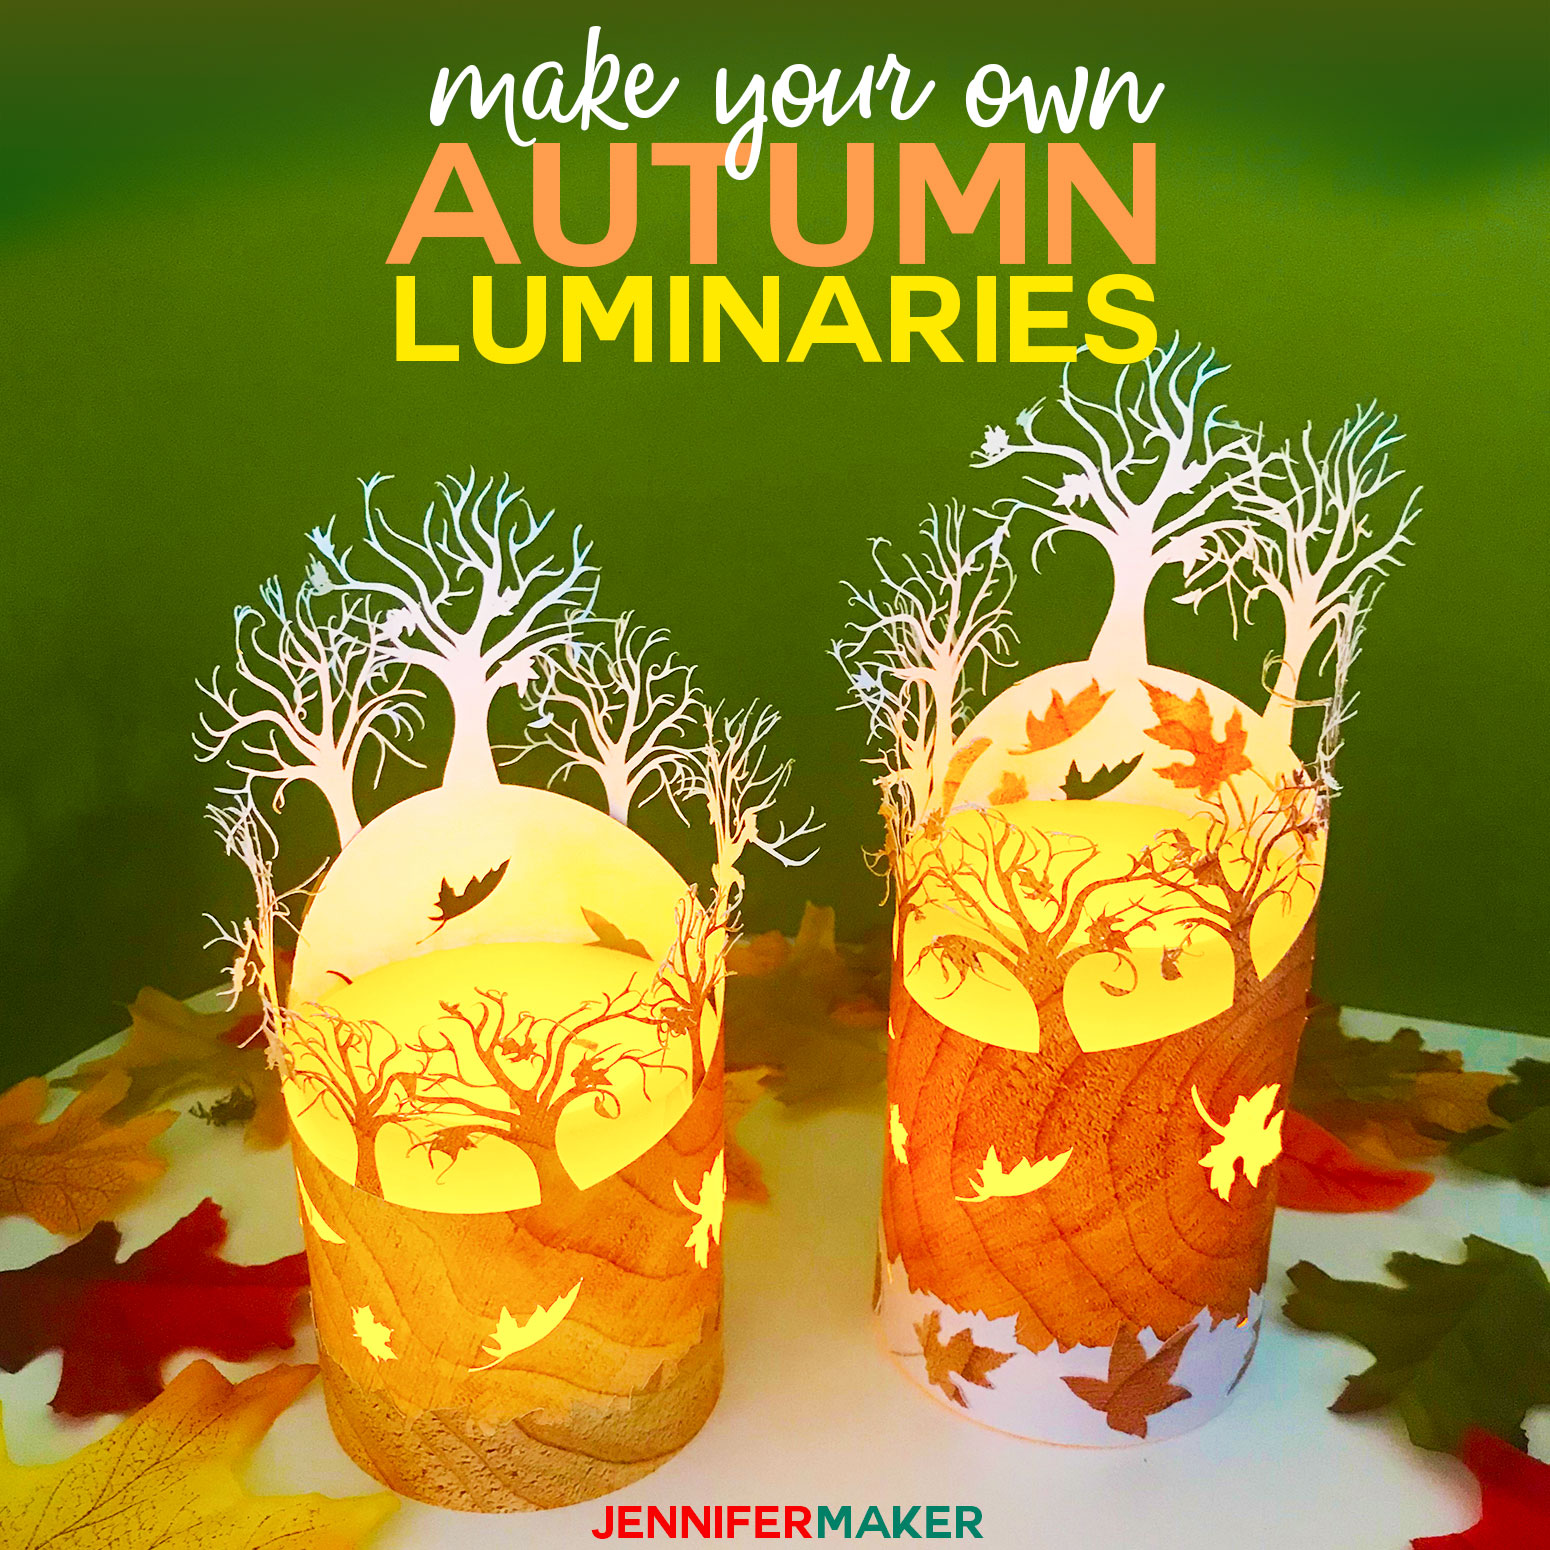 DIY Fall Luminary from Paper - Made on a Cricut | #luminary #papercraft #svgcutfile #cricut